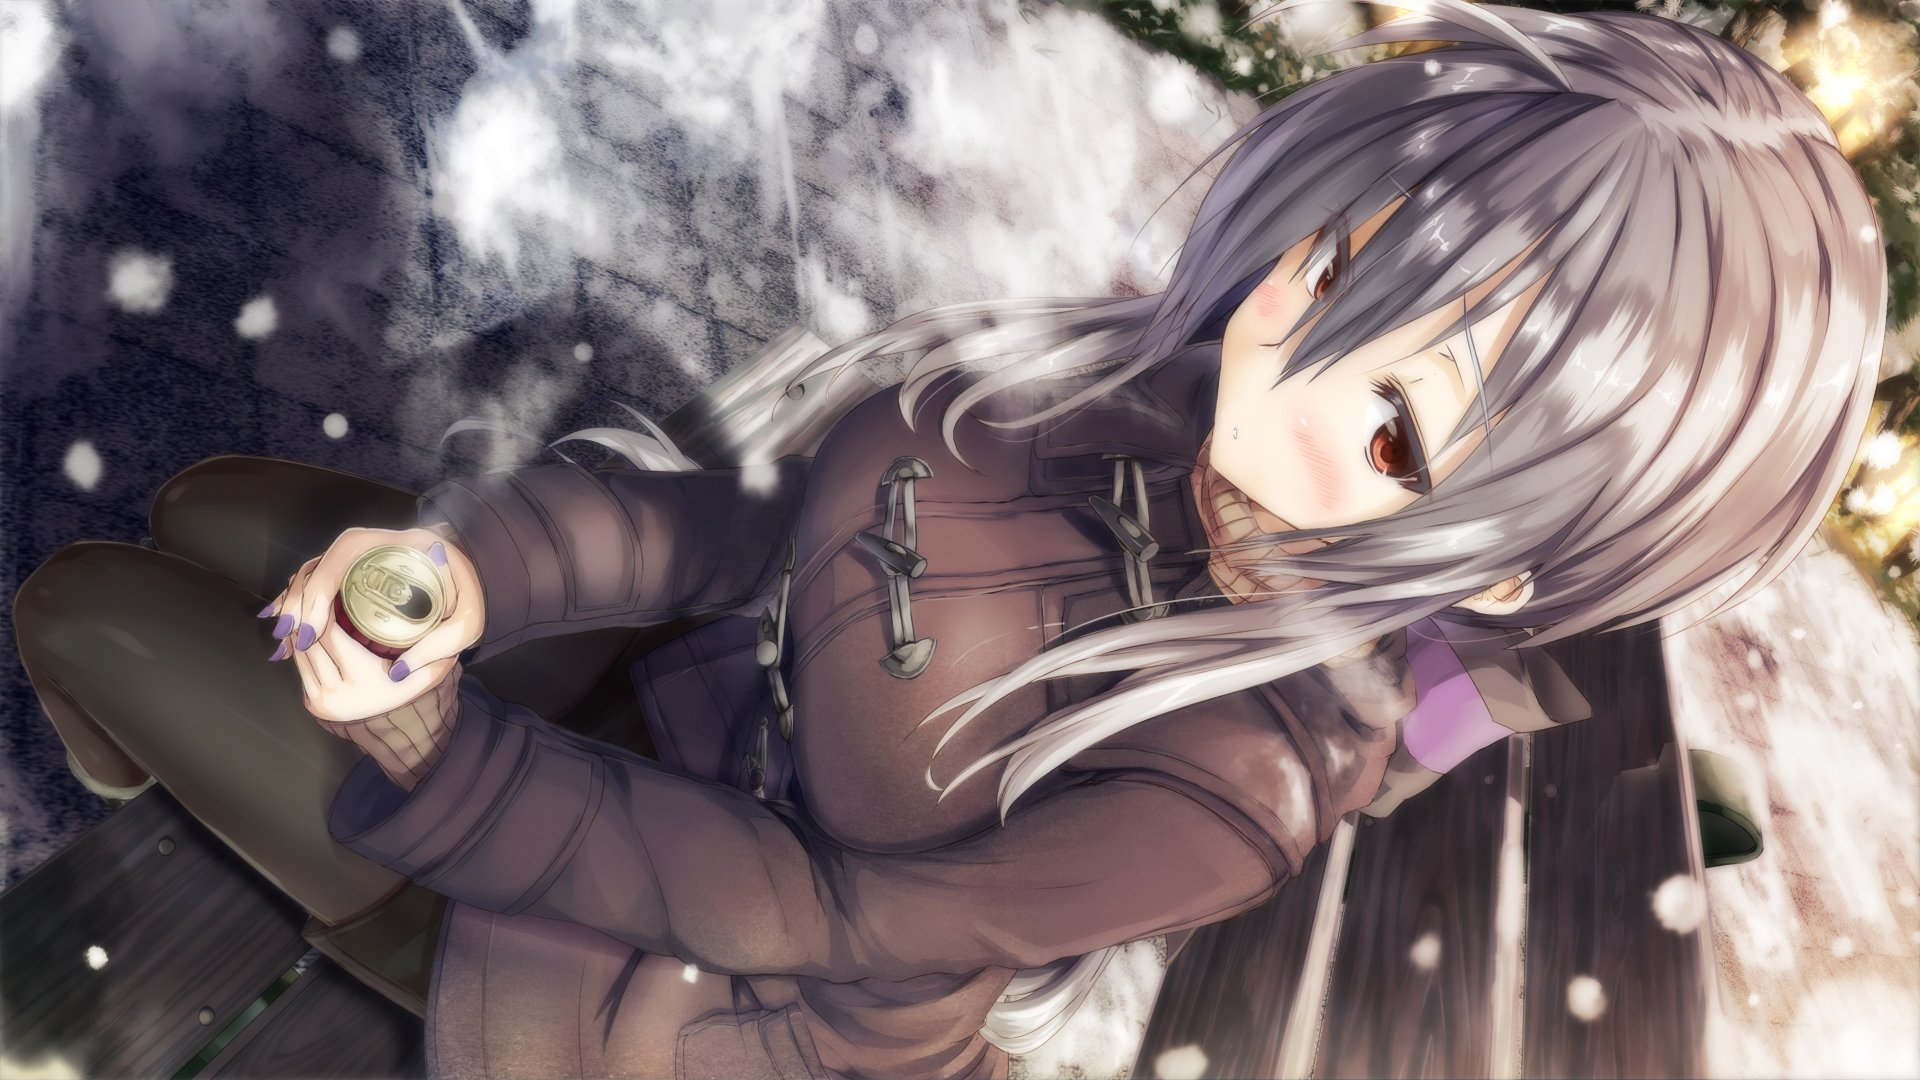 Vocaloid HD Wallpaper Background Image 1920x1080 ID724108 1920x1080